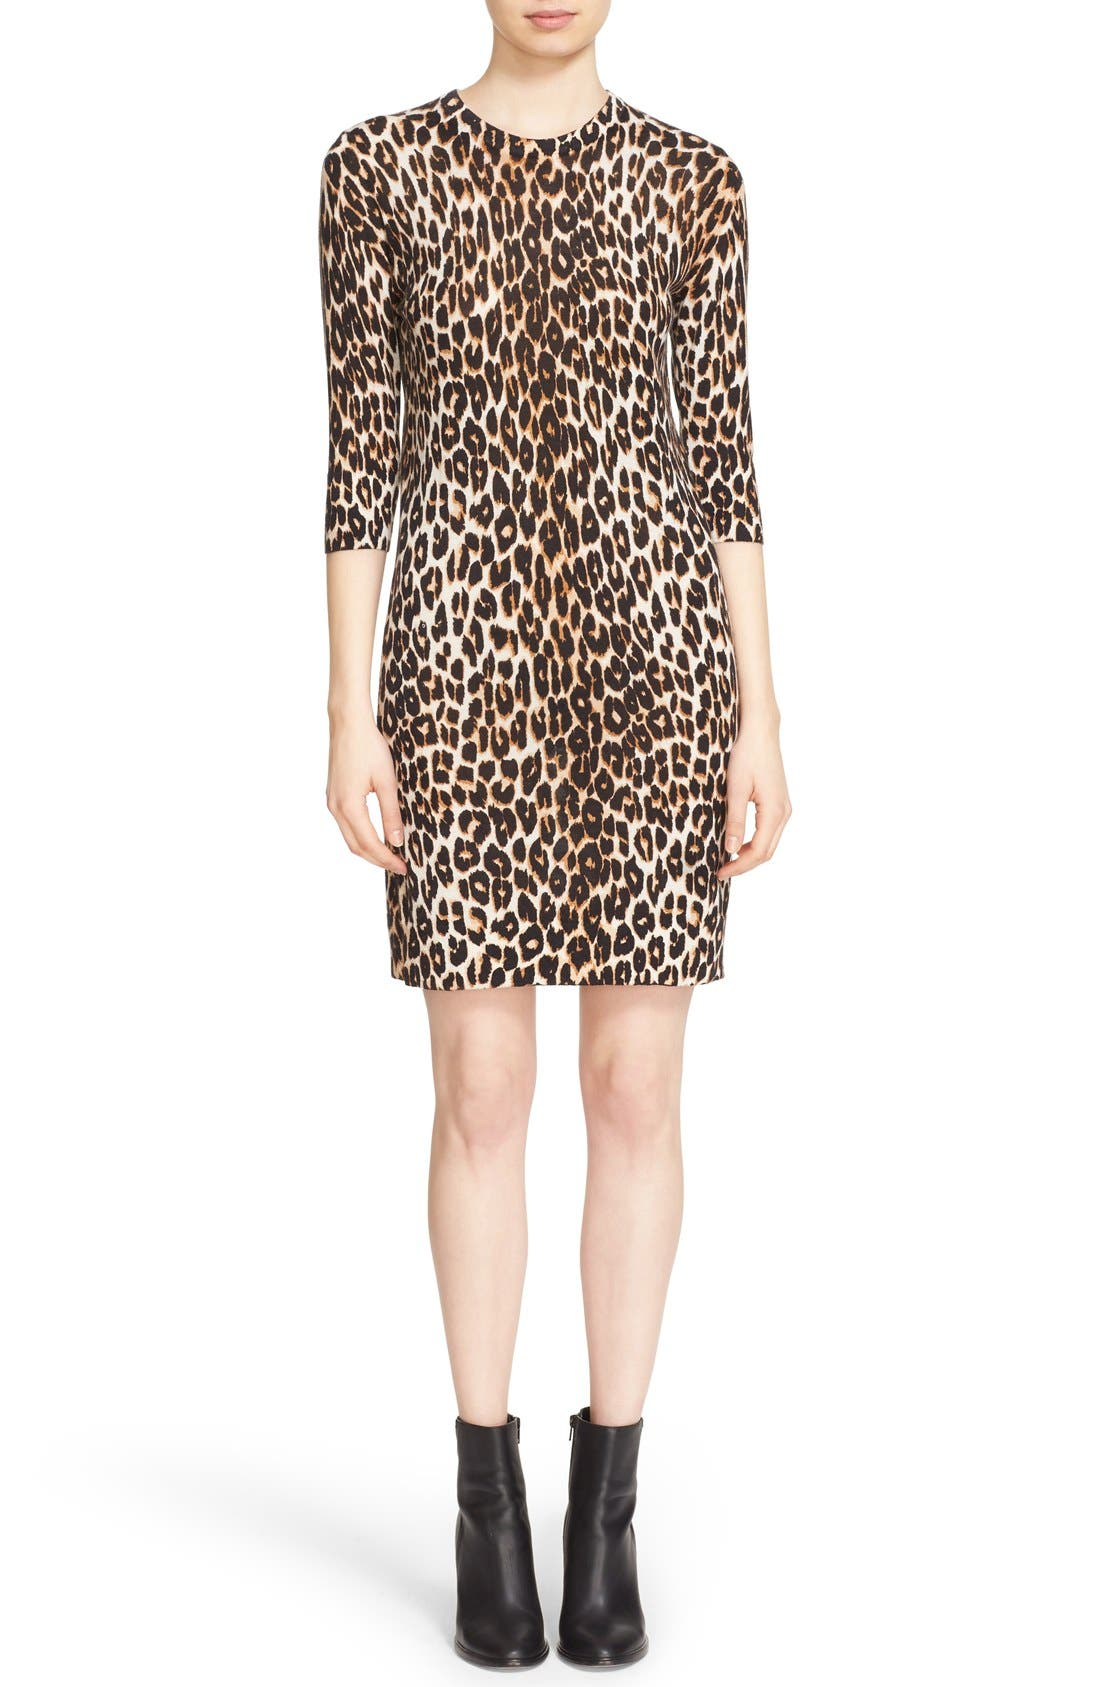 Alternate Image 1 Selected - Equipment 'Marta' Leopard Print Silk & Cashmere Knit Dress